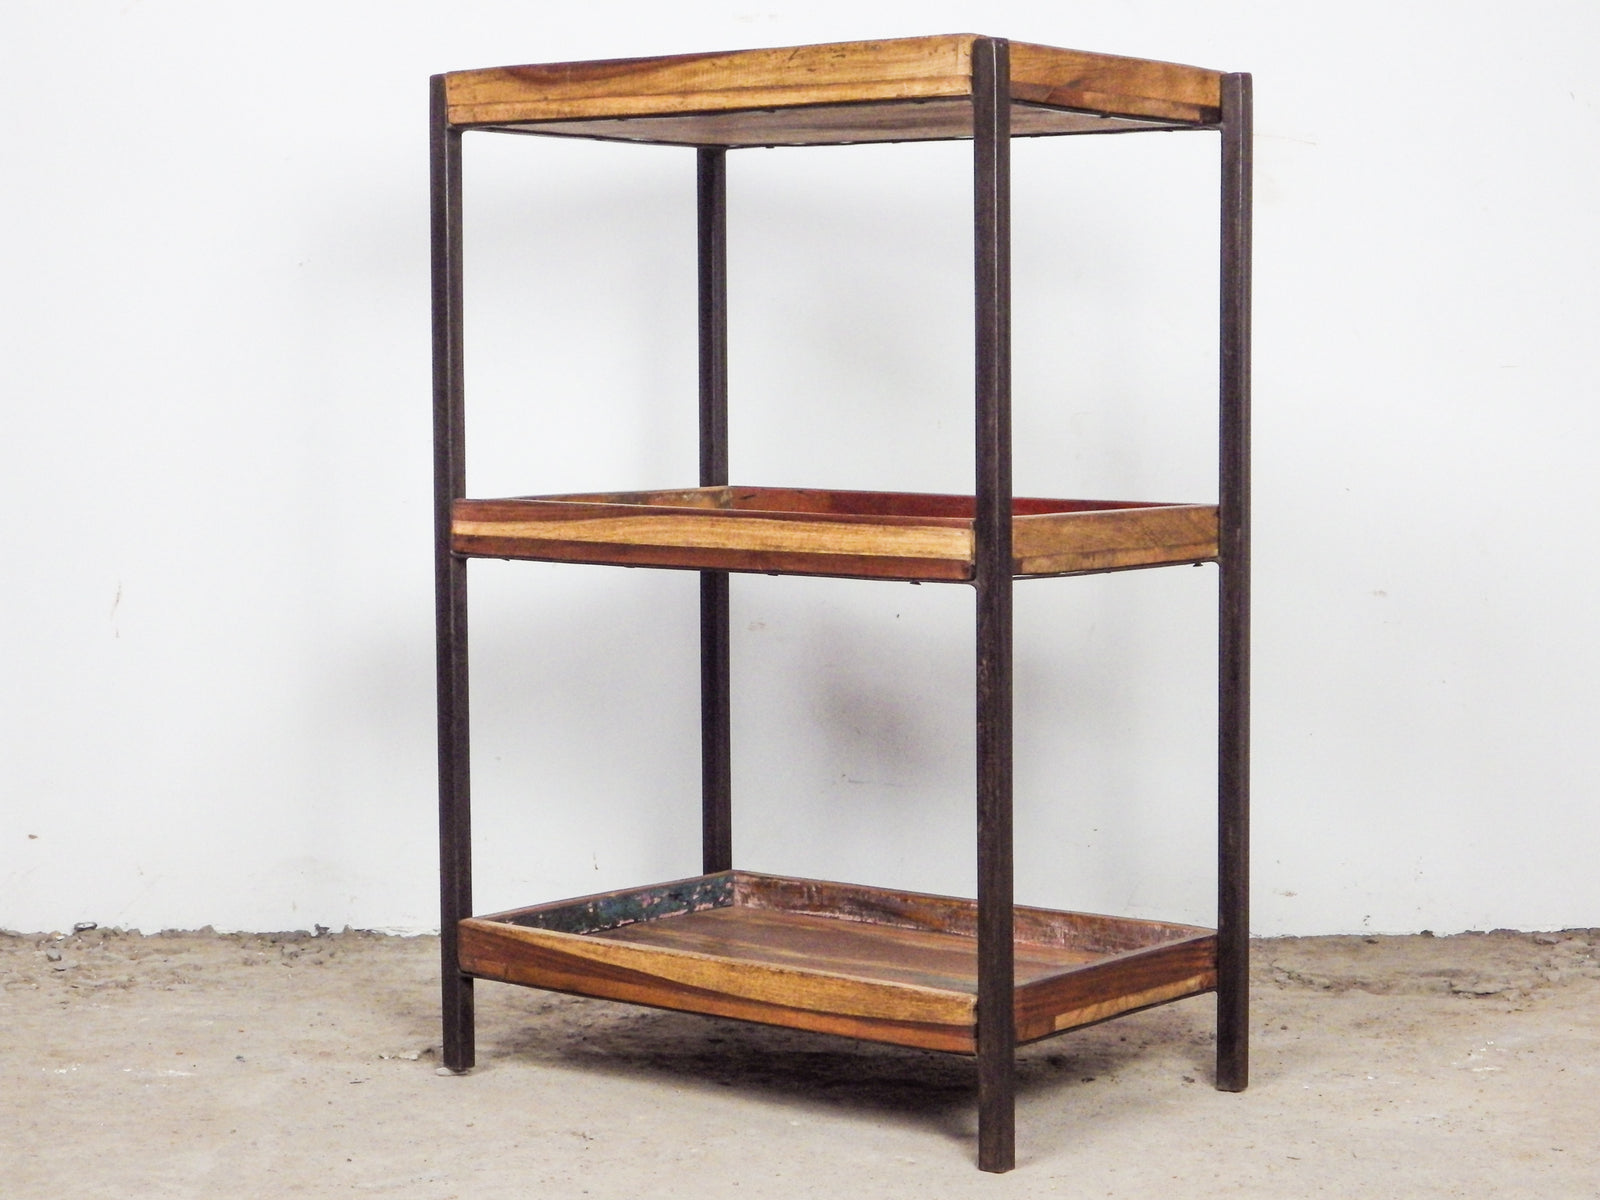 MILL-784 Wooden Shelves C8